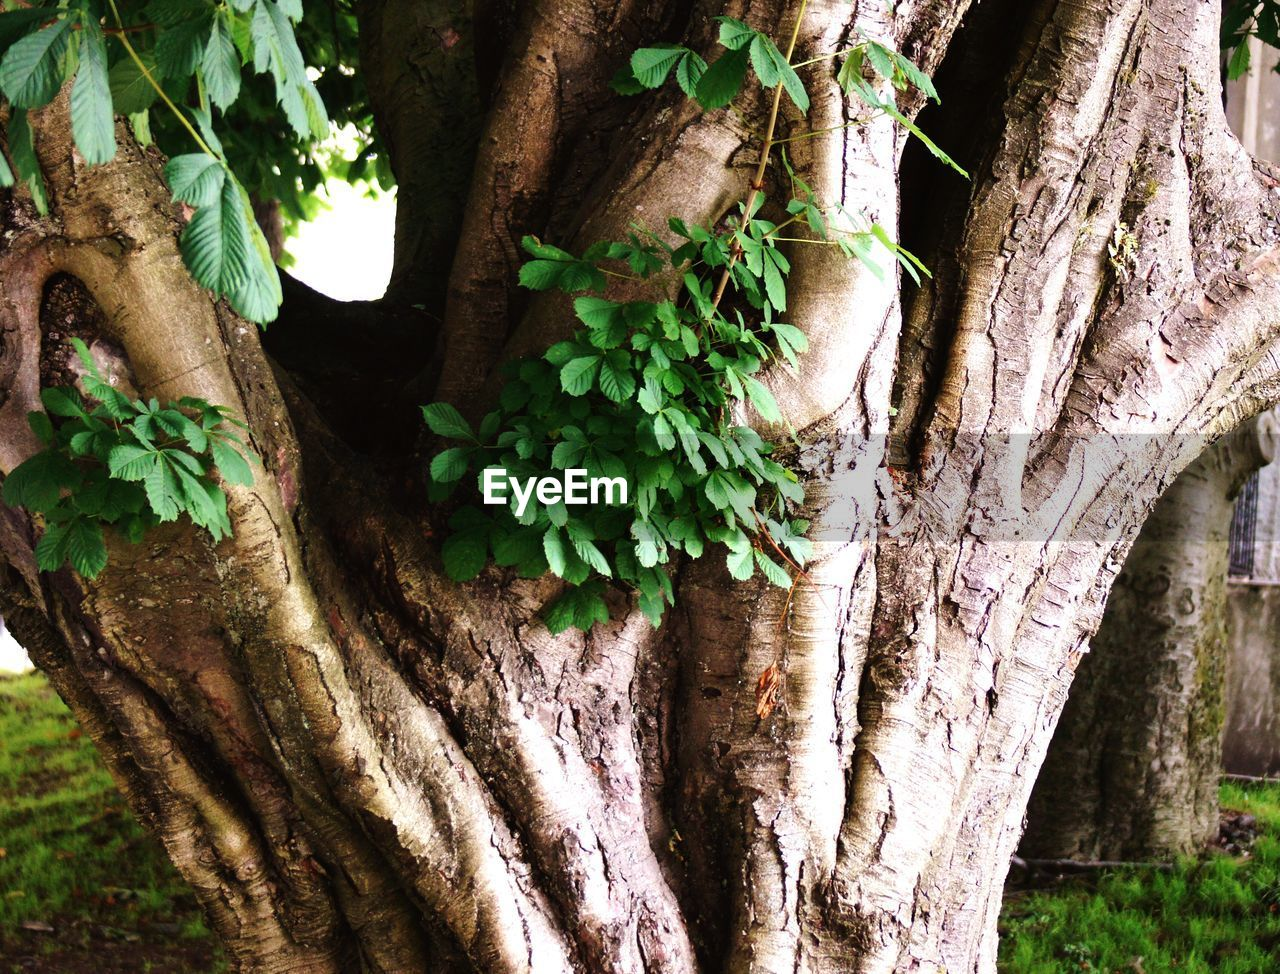 trunk, tree trunk, plant, tree, growth, nature, close-up, day, no people, outdoors, focus on foreground, textured, green color, plant part, leaf, beauty in nature, branch, plant bark, rough, wood - material, bark